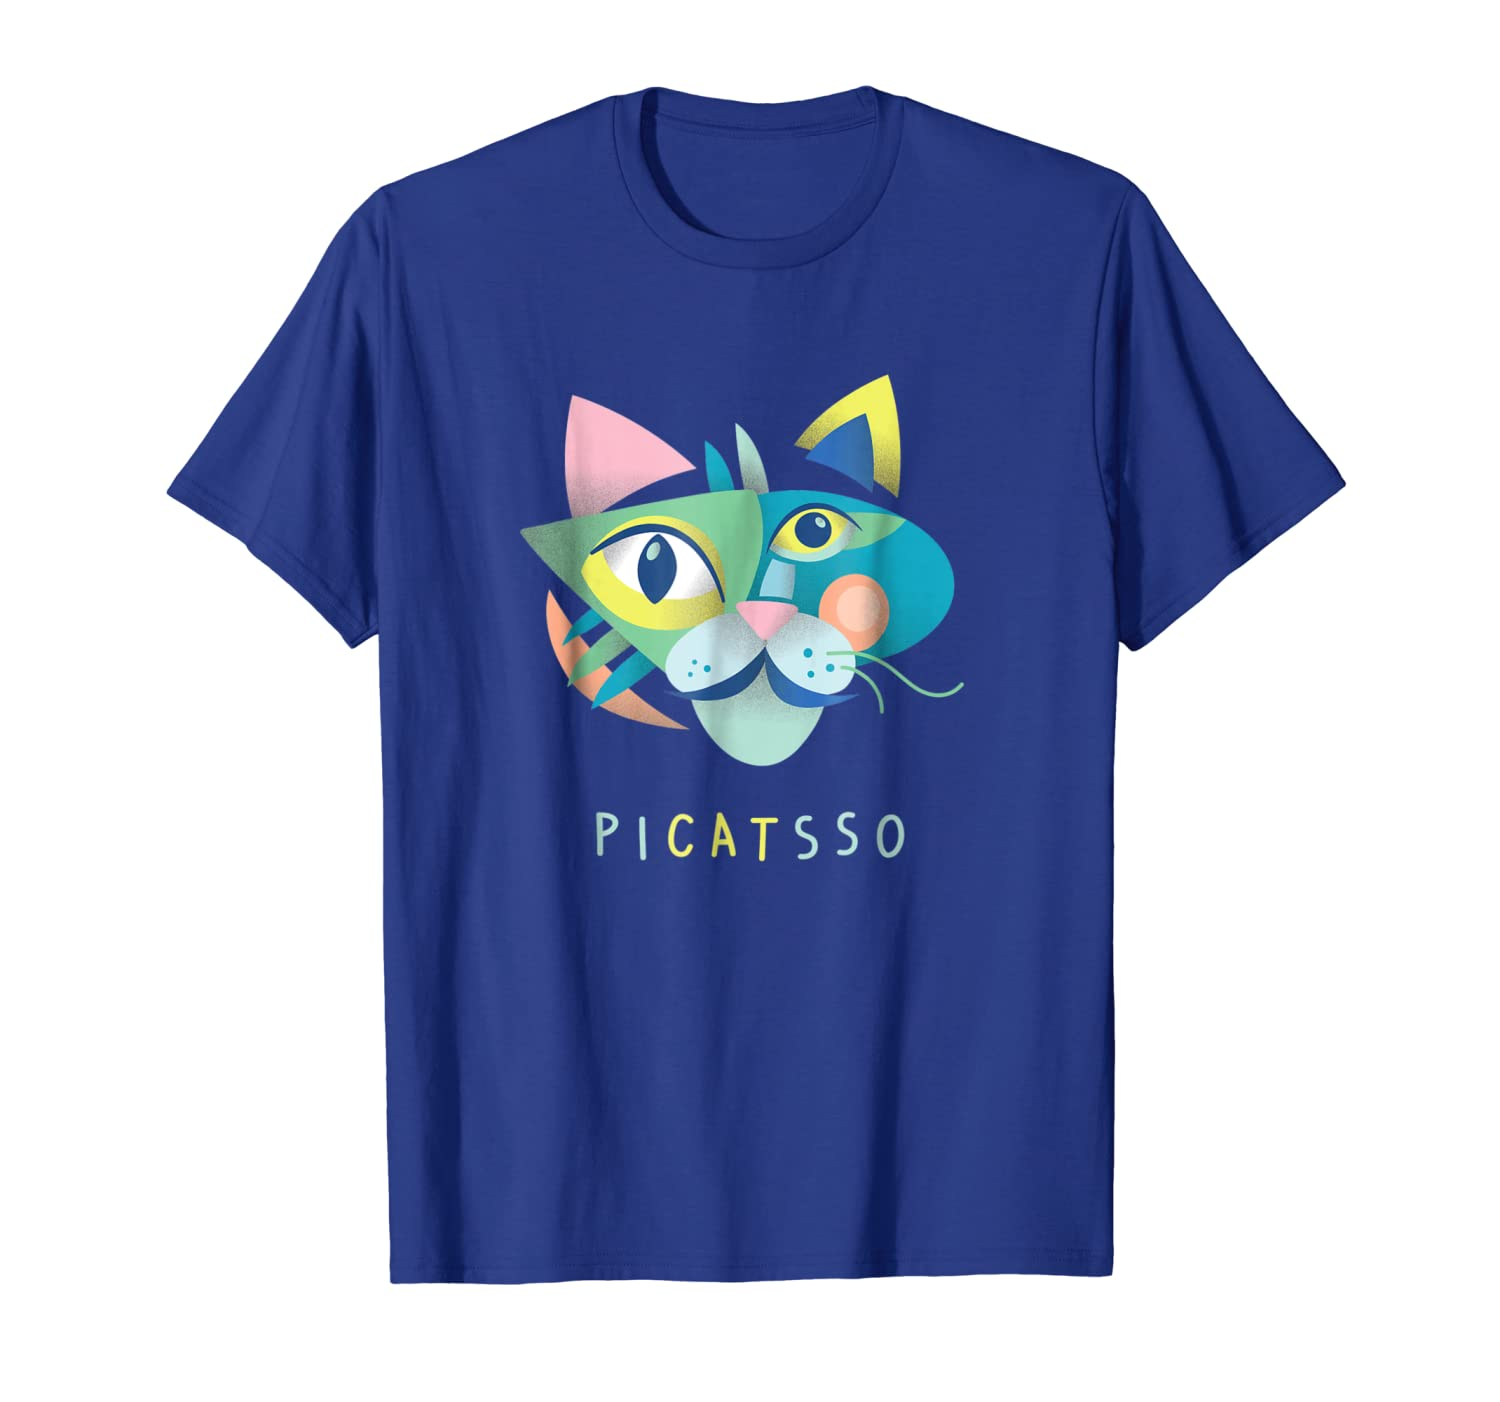 Artist & Art Teacher Shirt: Picatsso, Funny Abstract Cat Art-TH